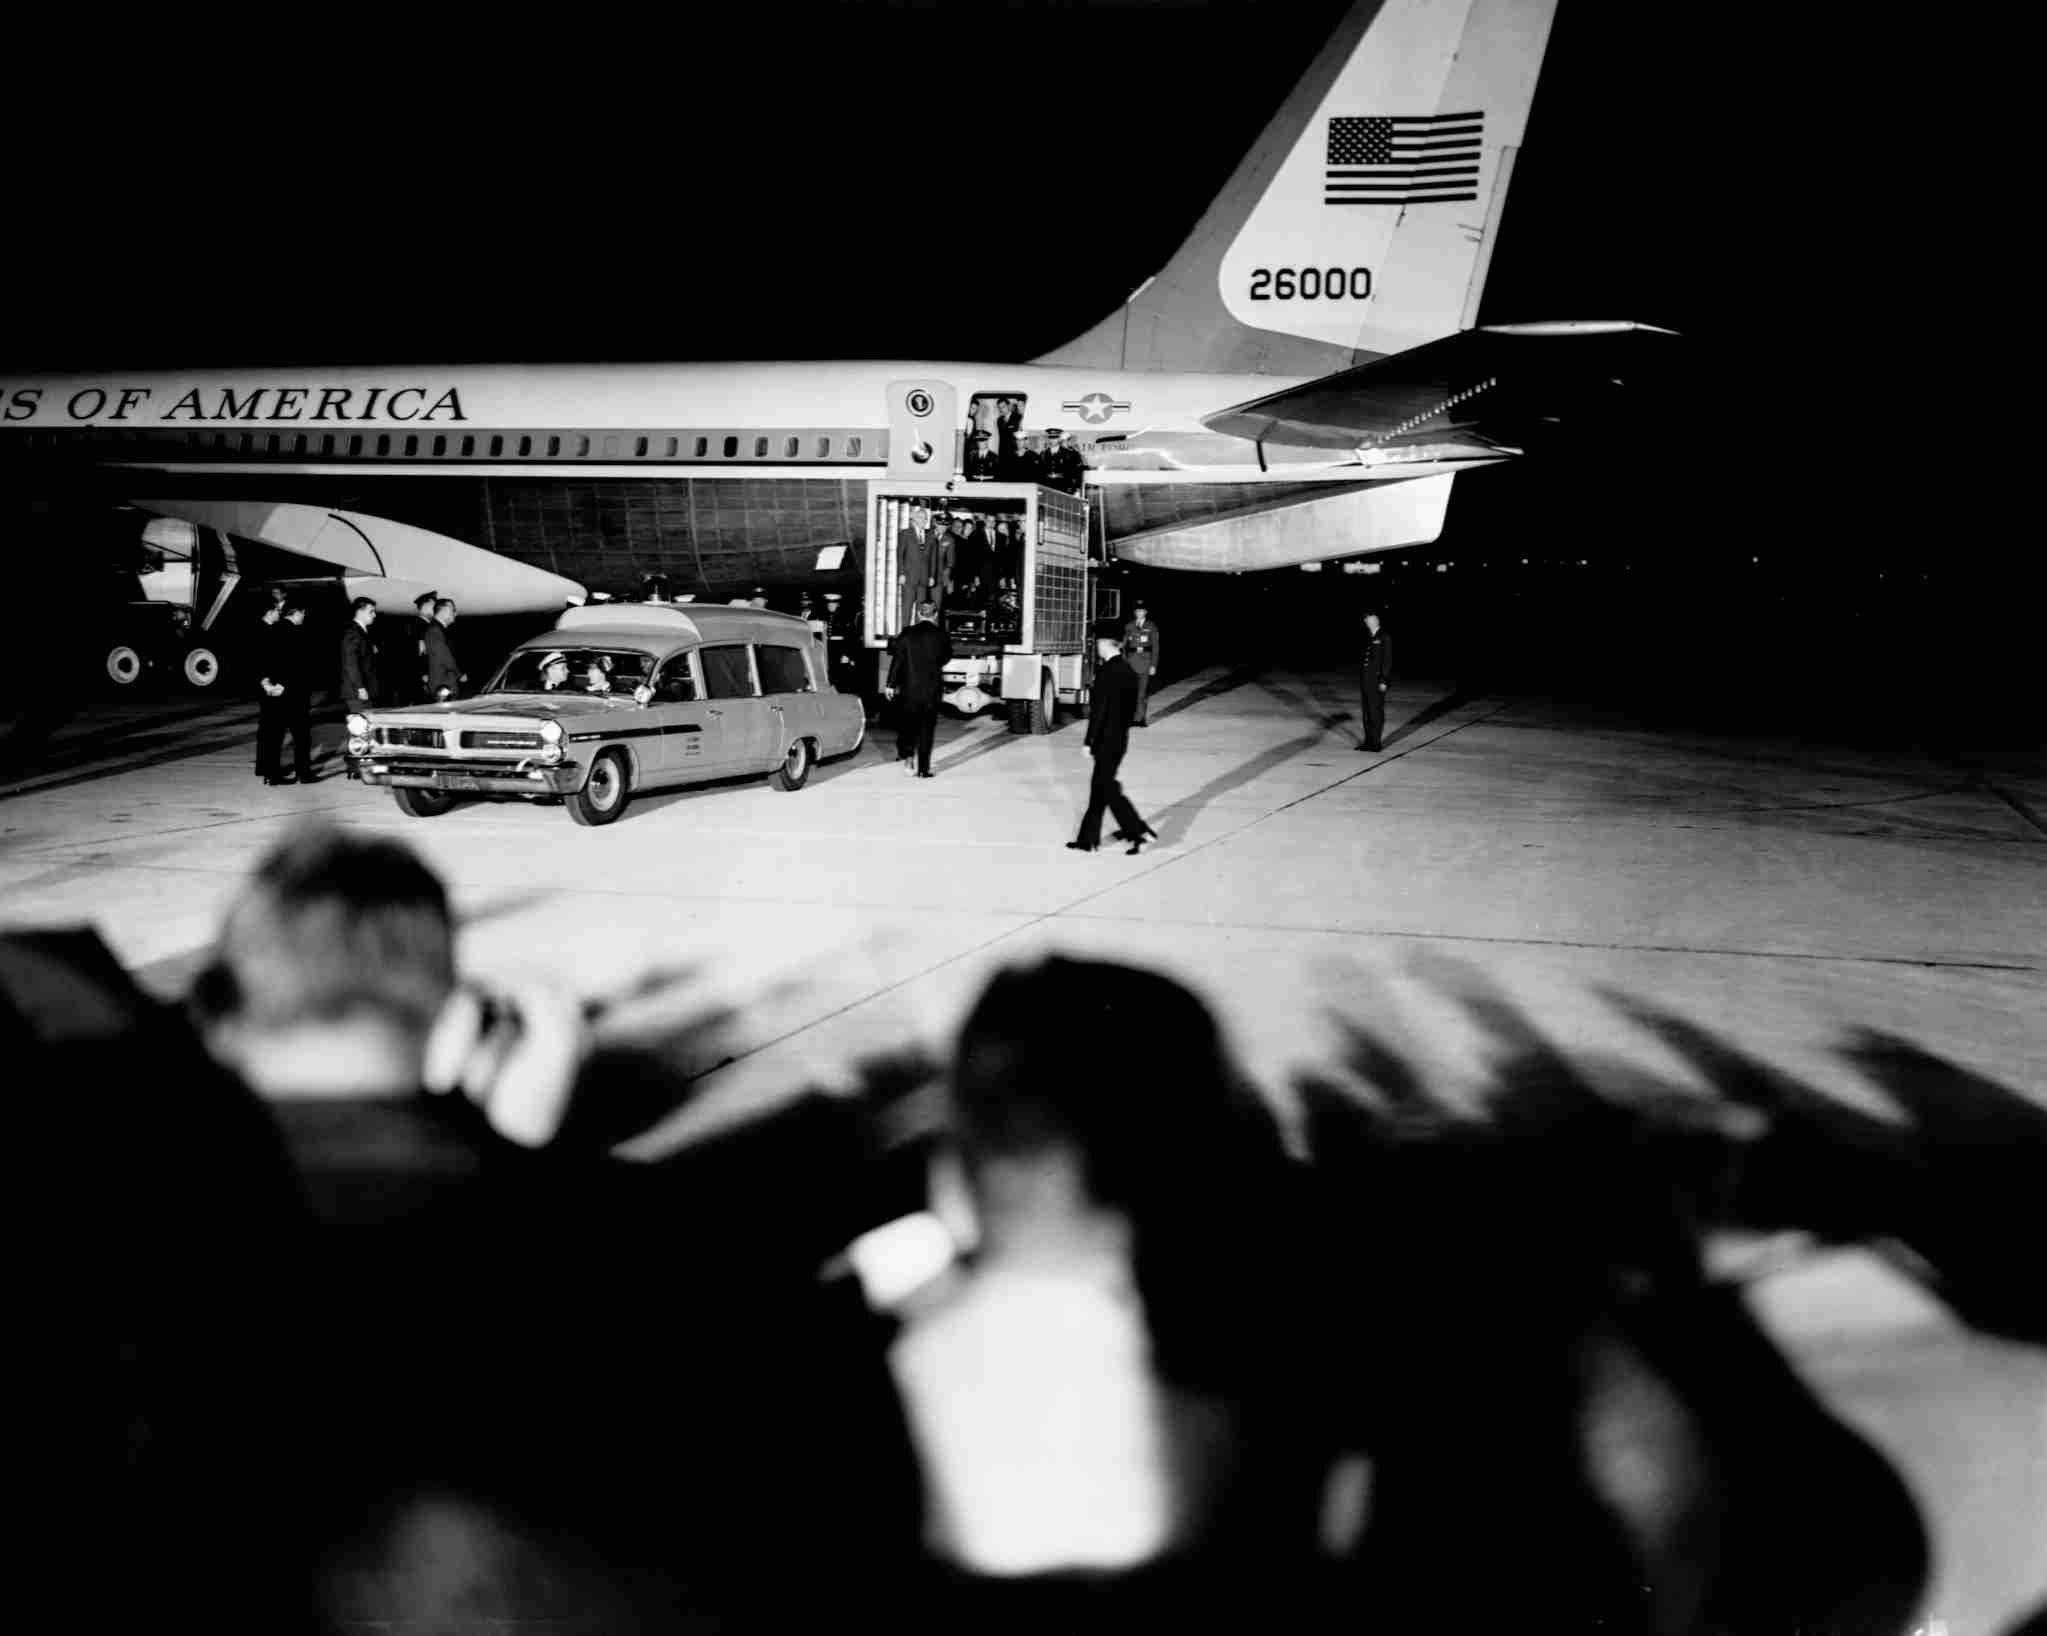 Air Force One arrives in Washington D.C. carrying the body of assasinated president John F. Kennedy from Dallas. November 22, 1963. (Photo by © CORBIS/Corbis via Getty Images)